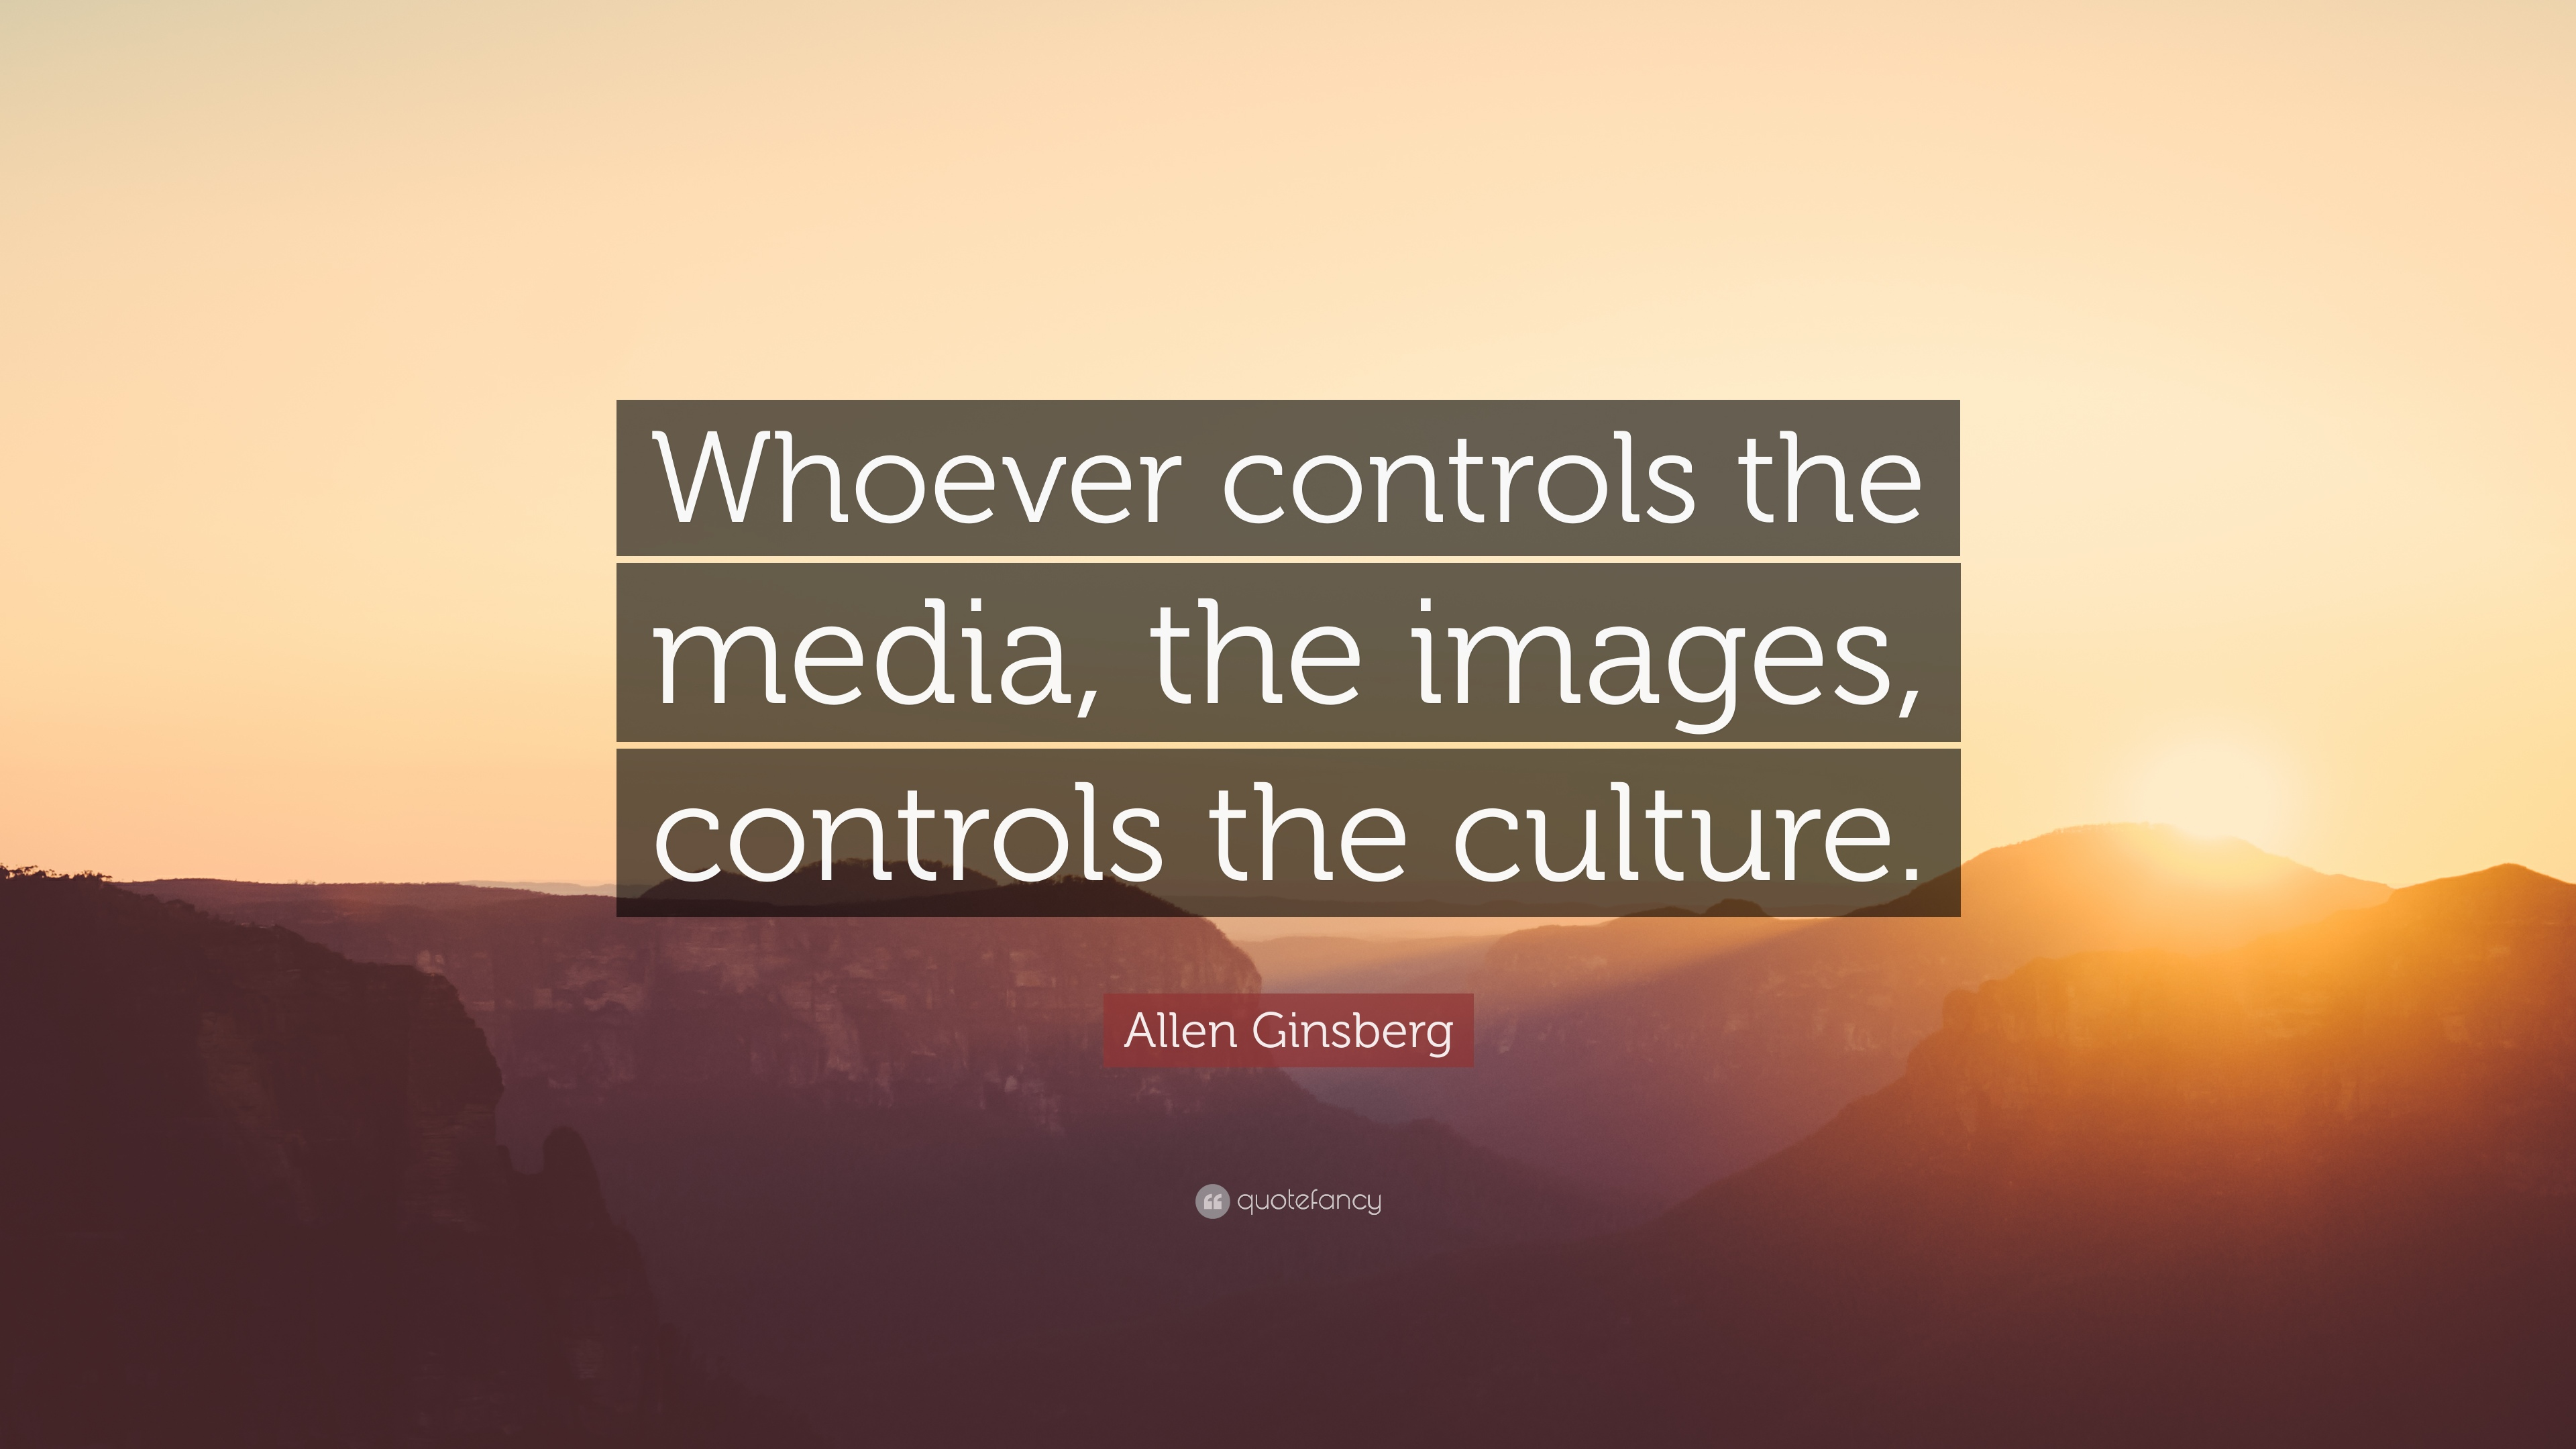 whoever controls the media controls the culture essay